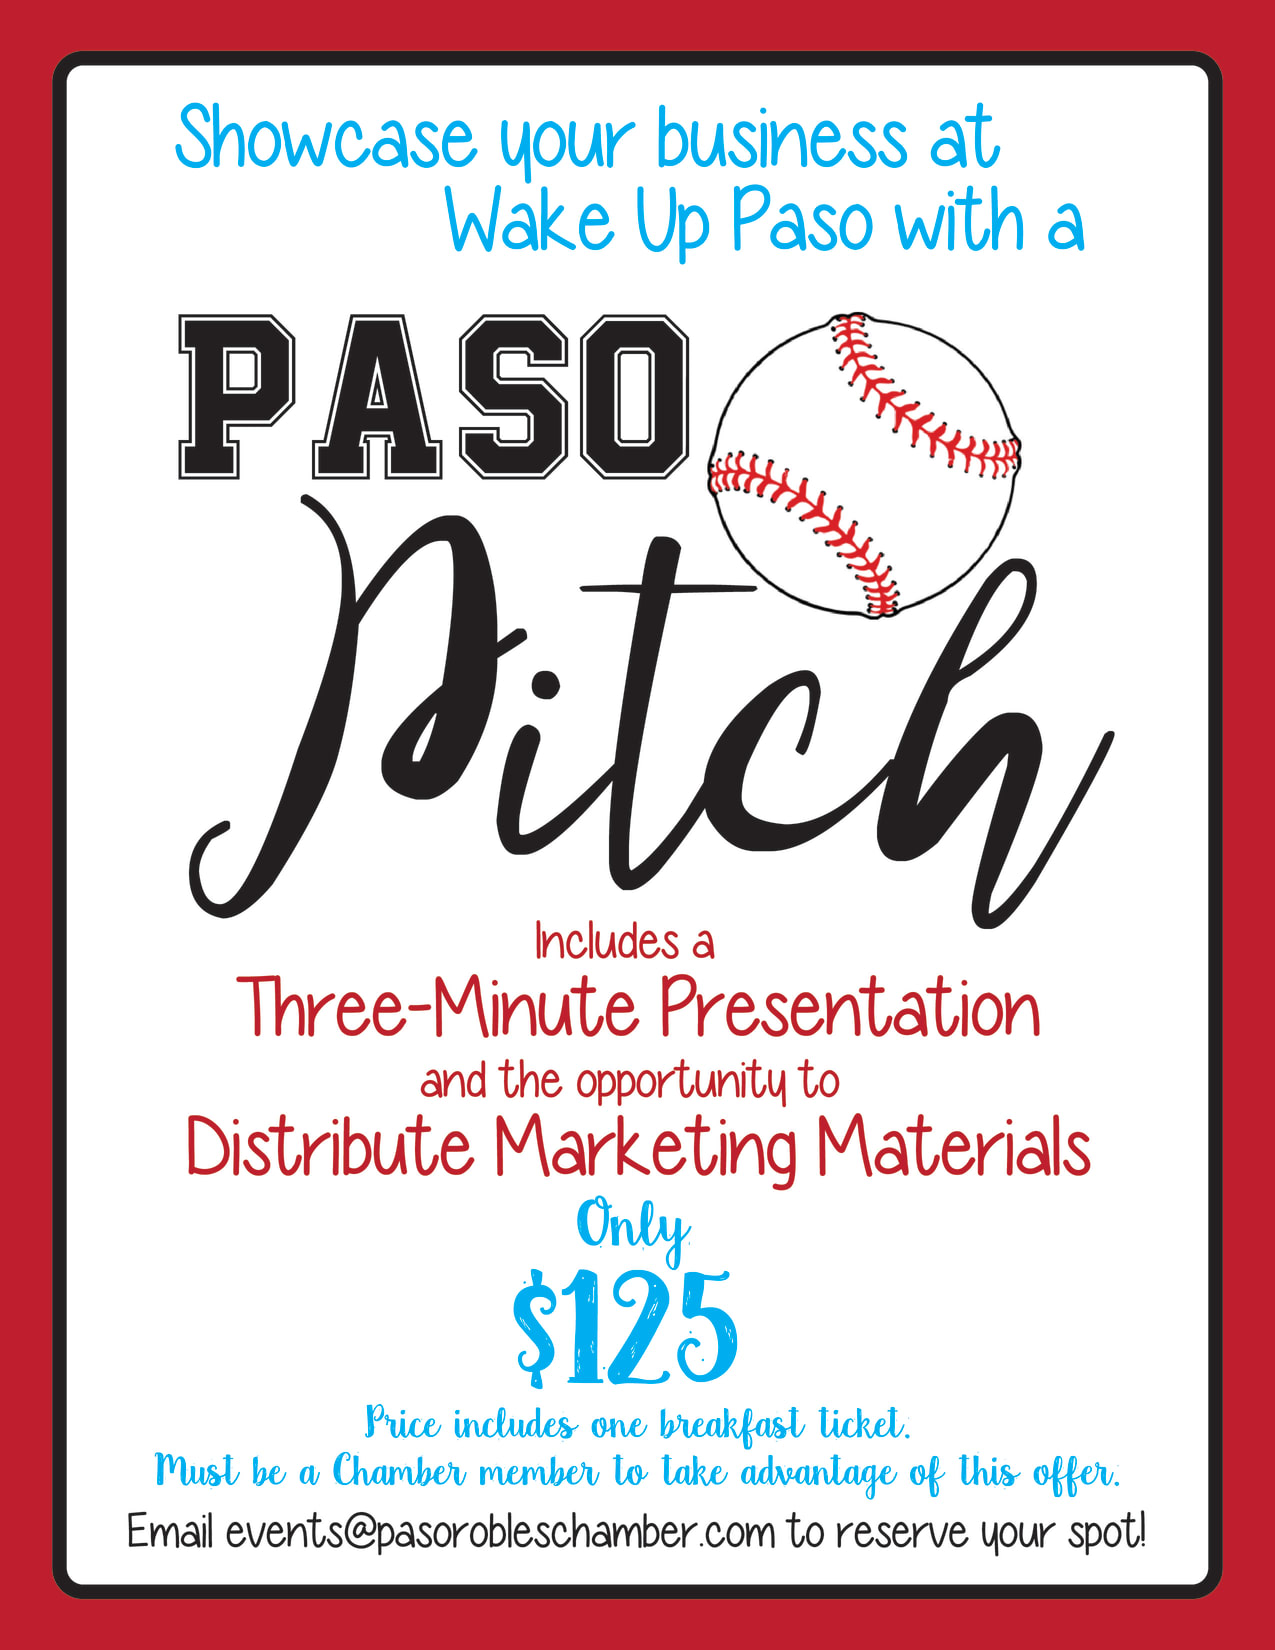 paso-pitch-flyer-01-w1275.jpg